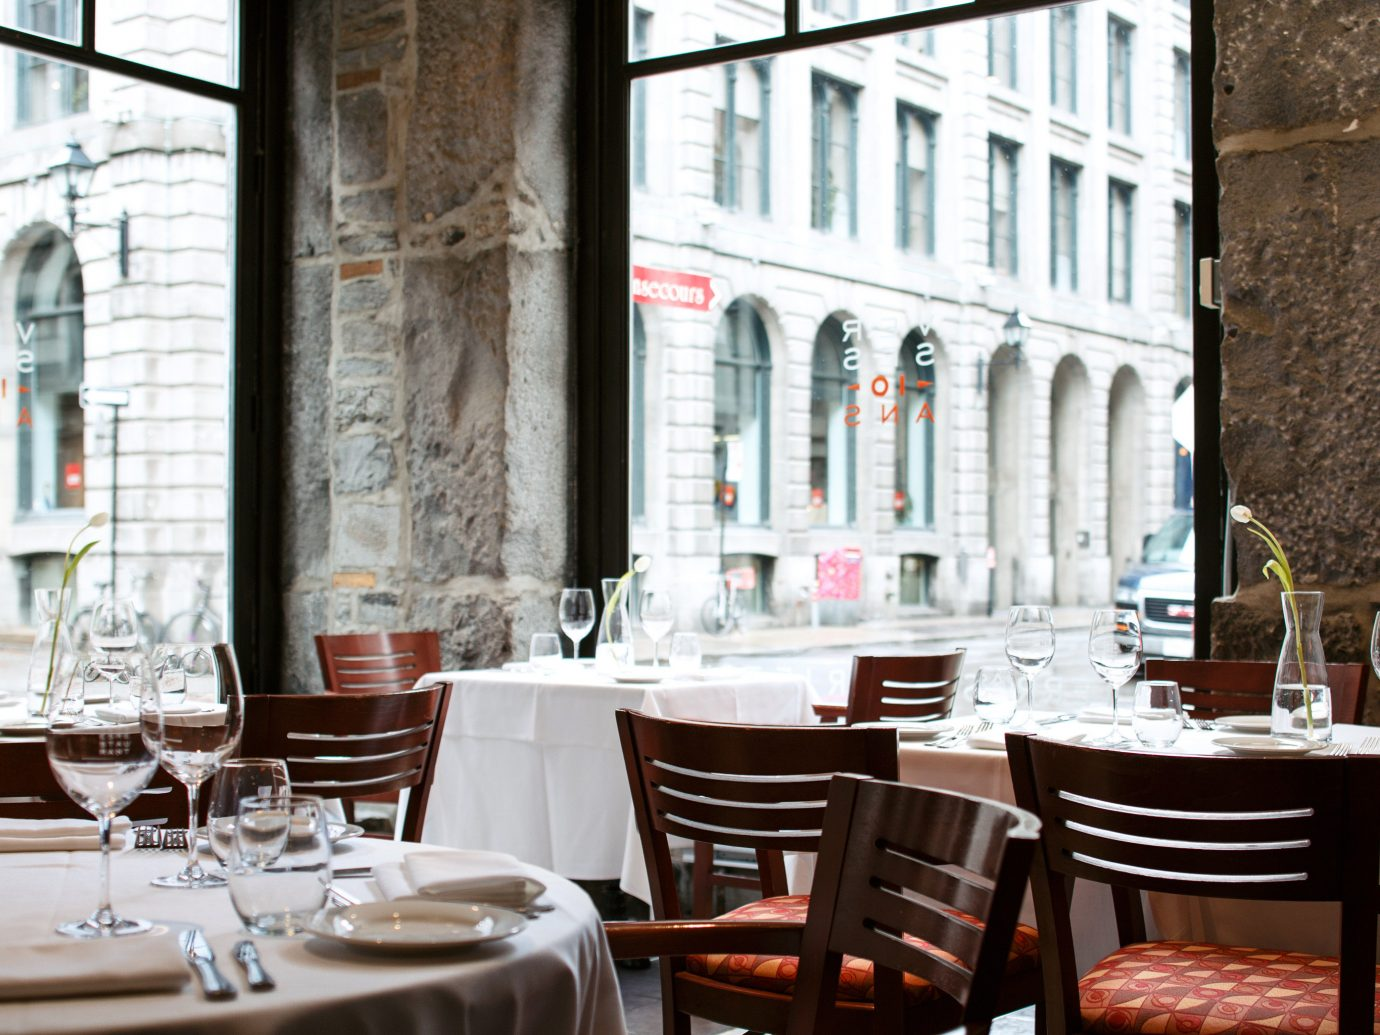 Canada Classic Dining Drink Eat Elegant Hotels Luxury Montreal Trip Ideas table building chair restaurant window room interior design estate meal